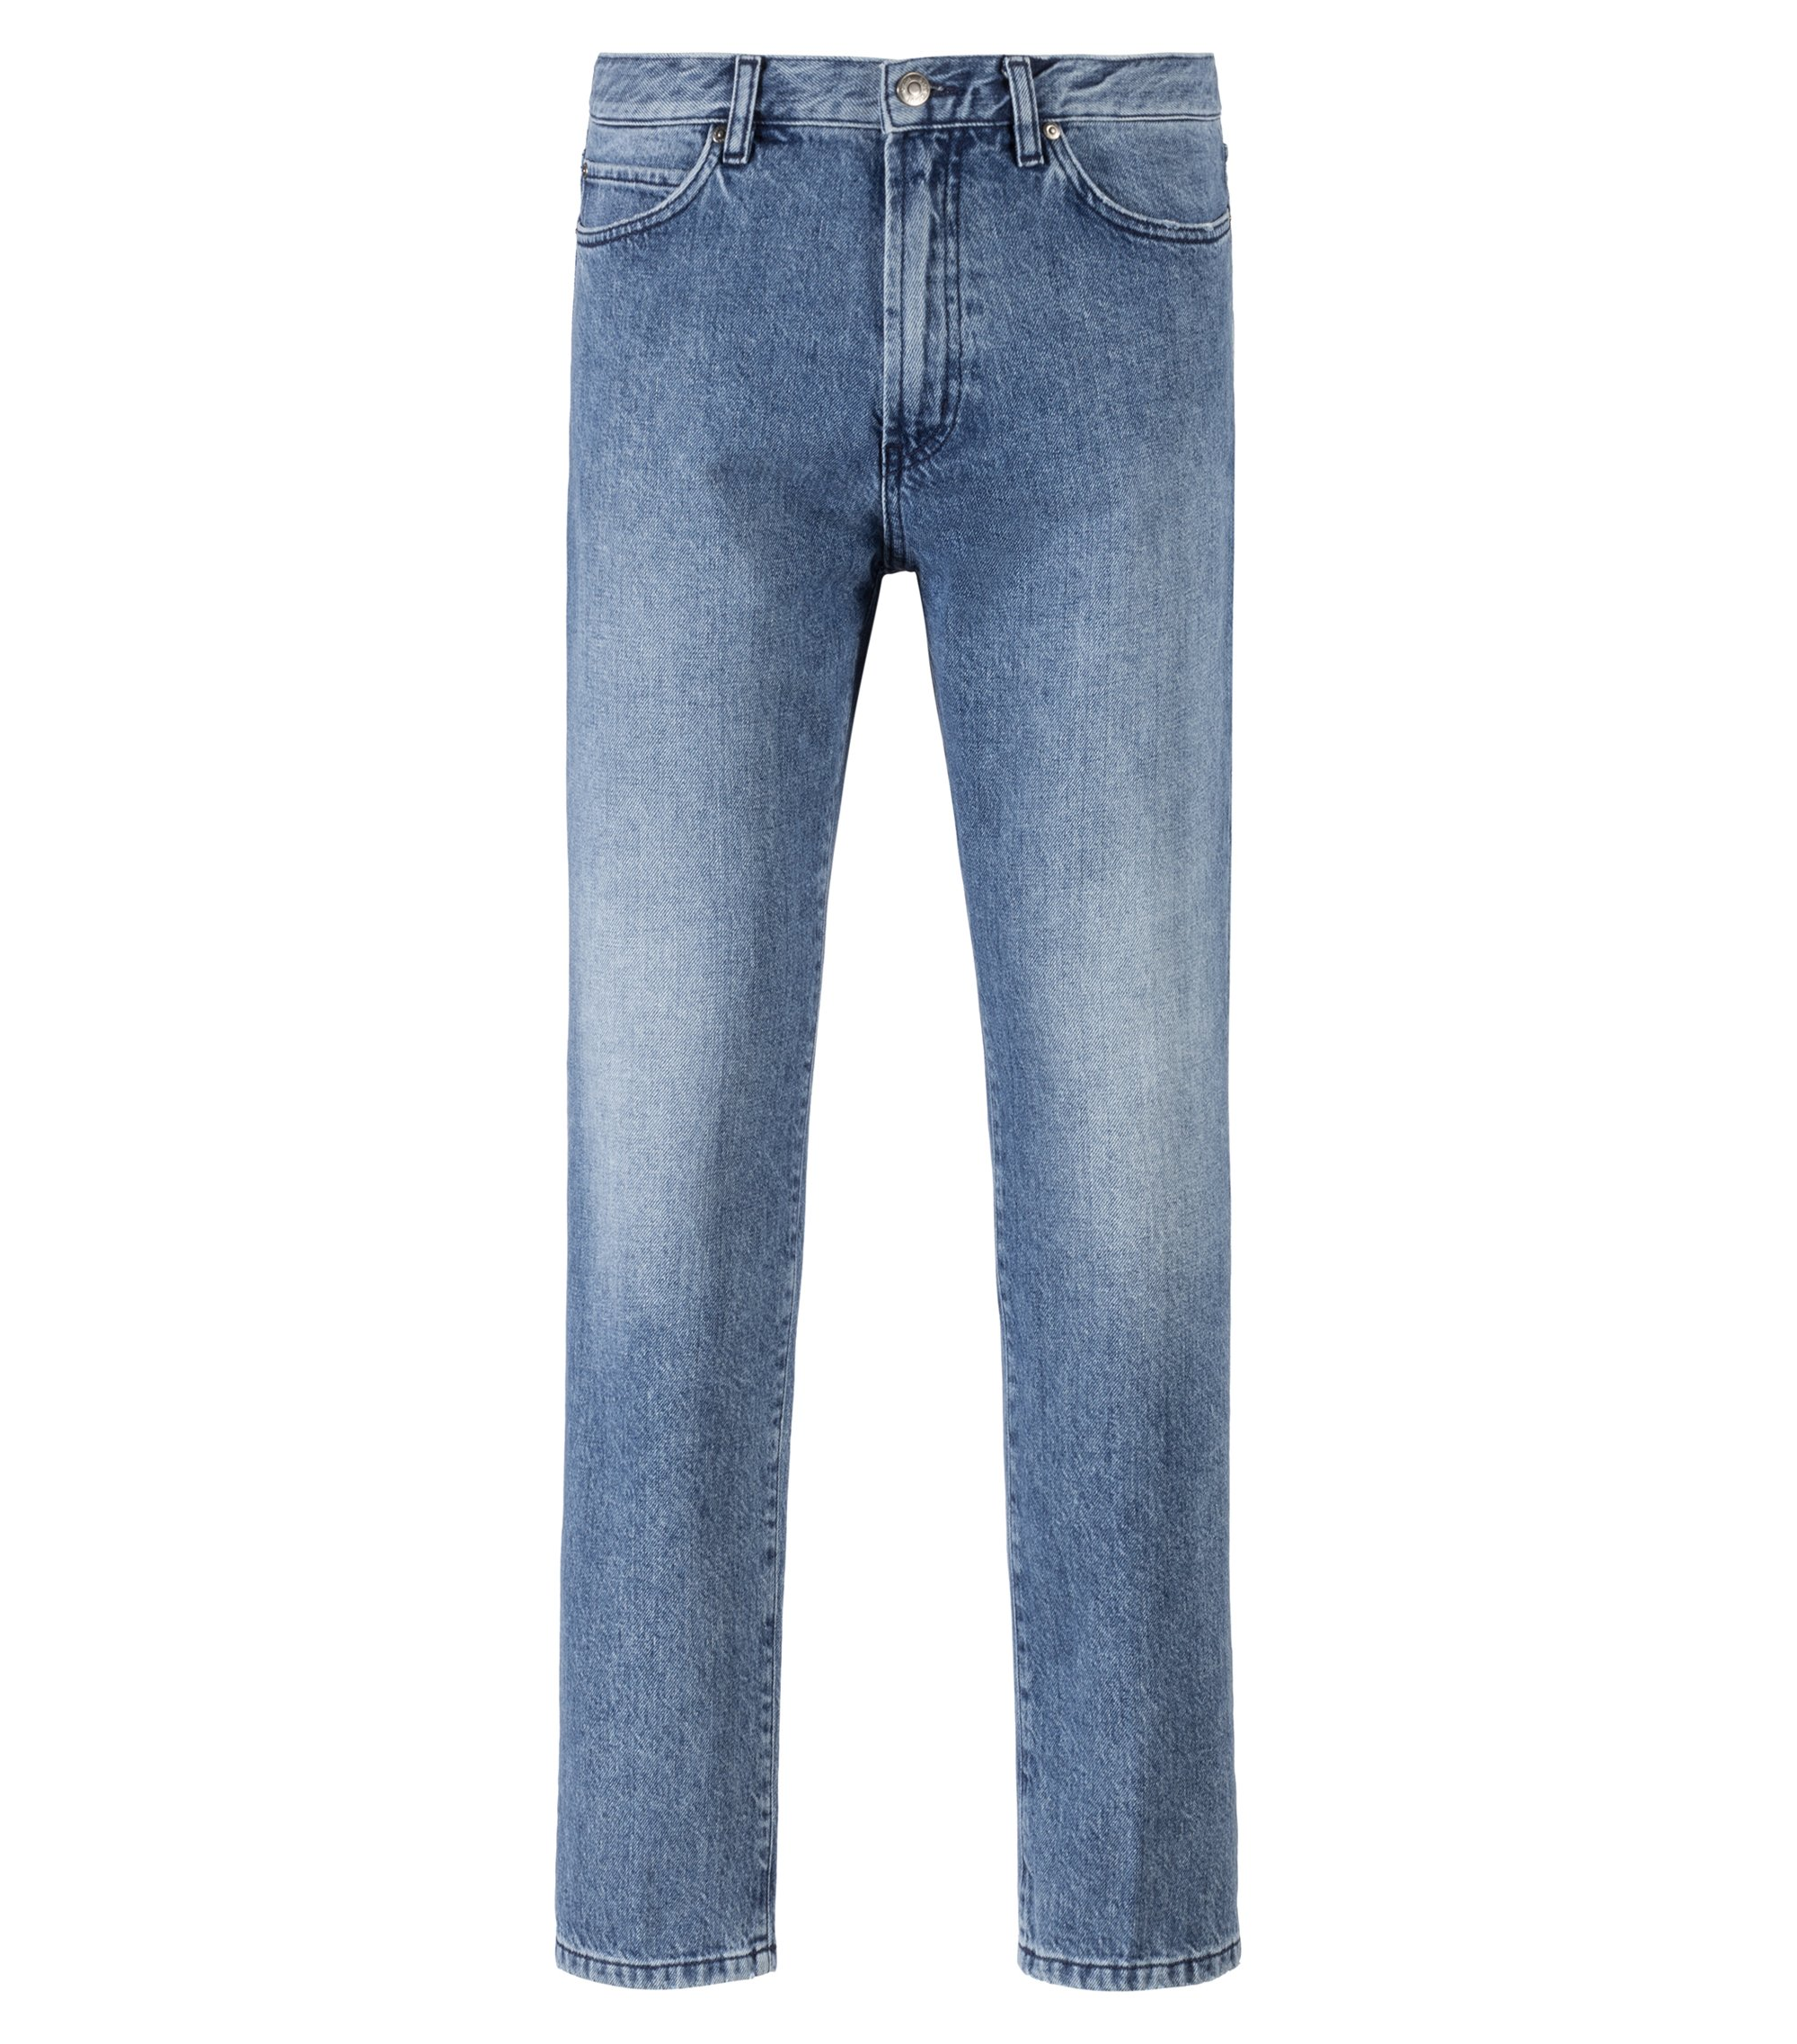 Jean Regular Fit mixte en denim italien bleu clair, Bleu